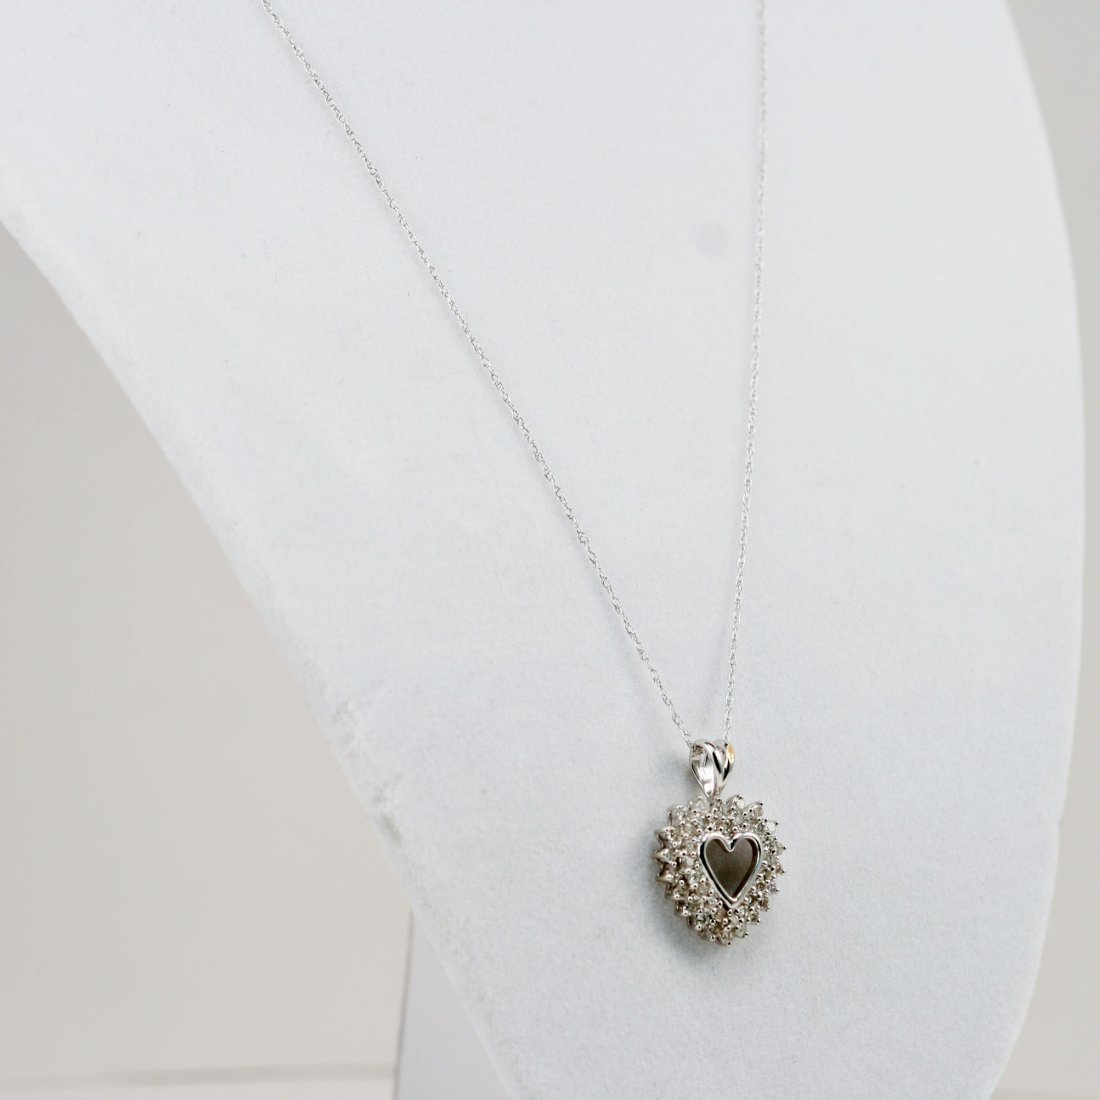 14K WT DIAMOND HEART PENDANT